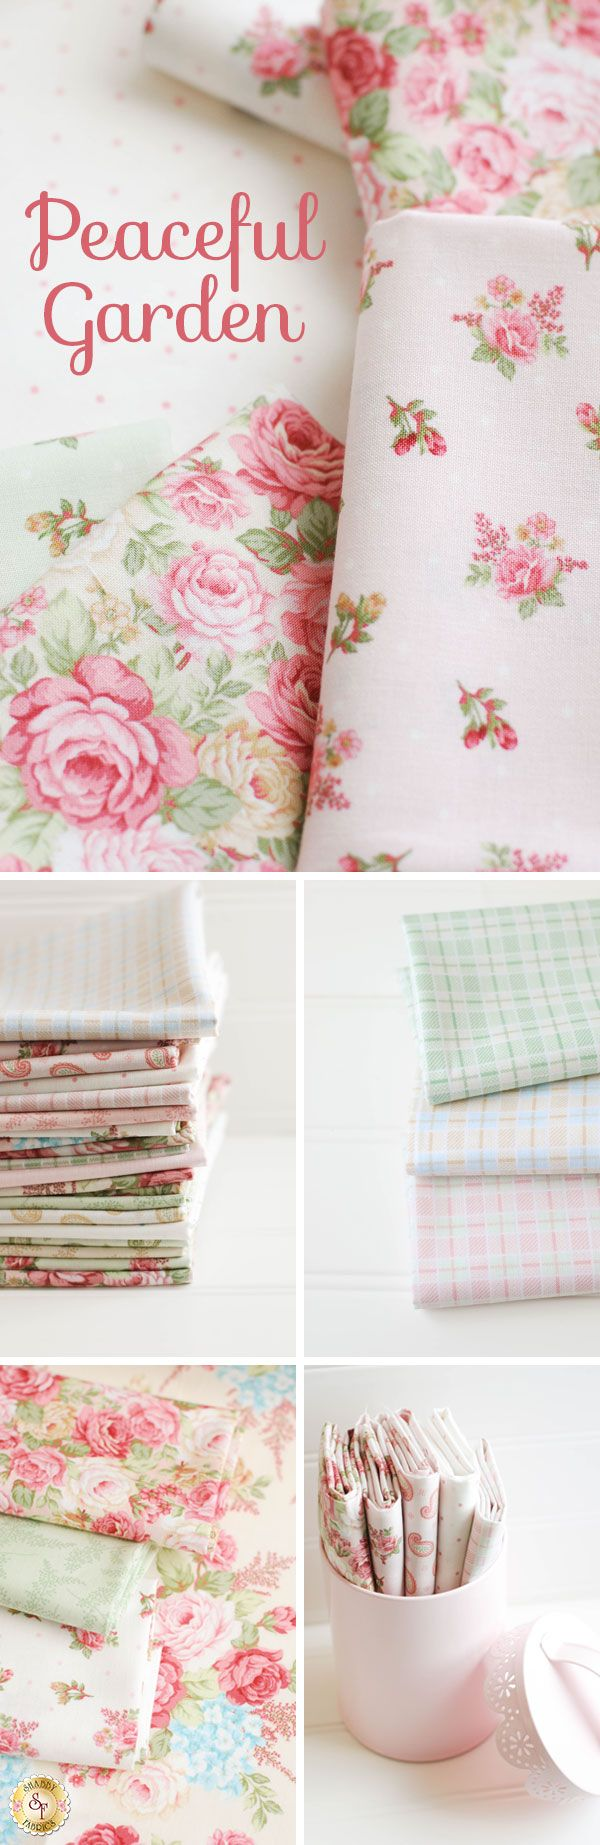 1345 best fabric images on pinterest quilting fabric sewing